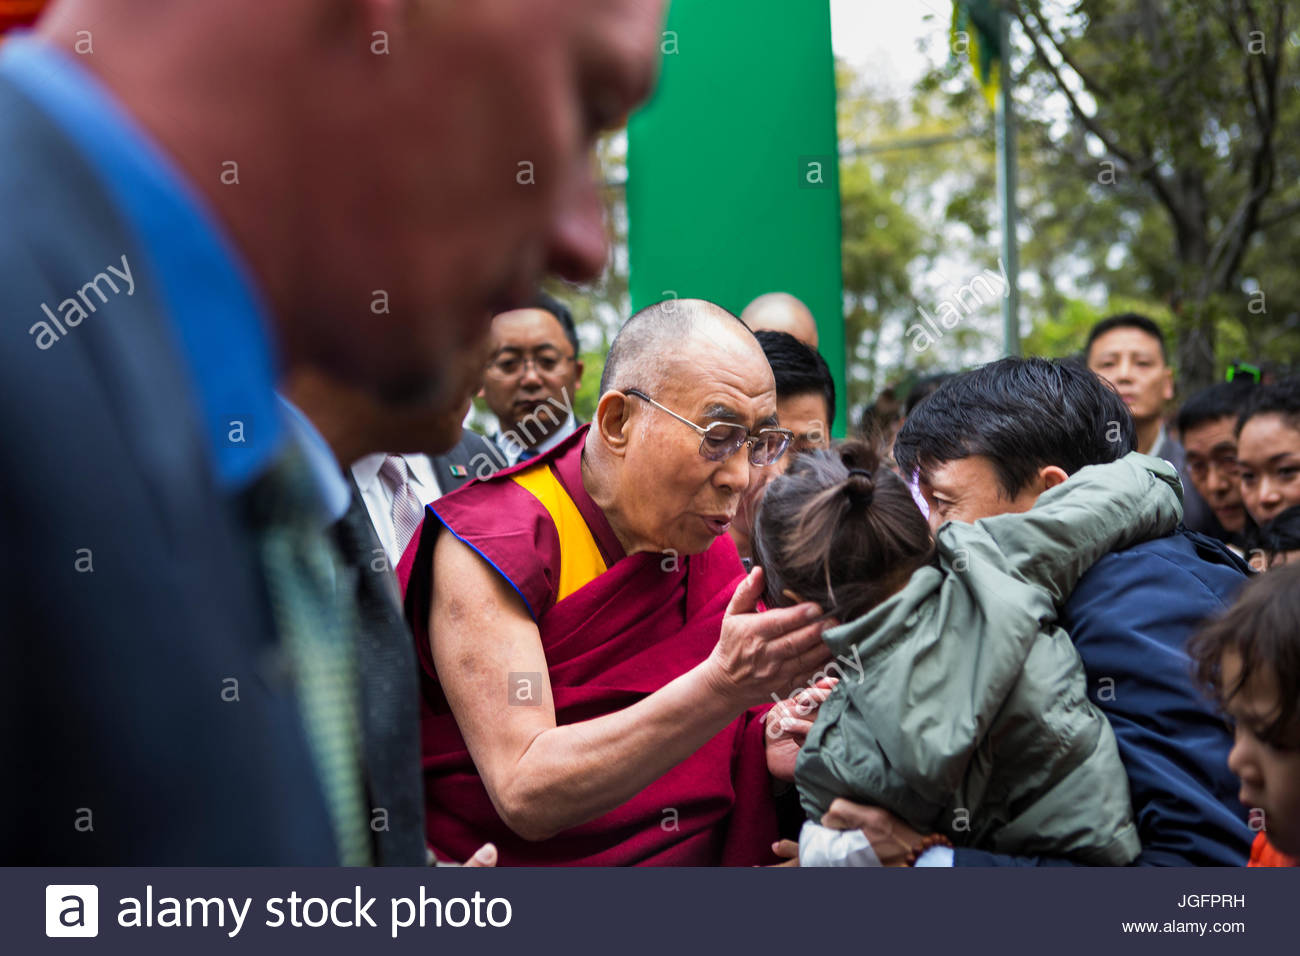 The Dalai Lama leans down to greet a child. - Stock Image